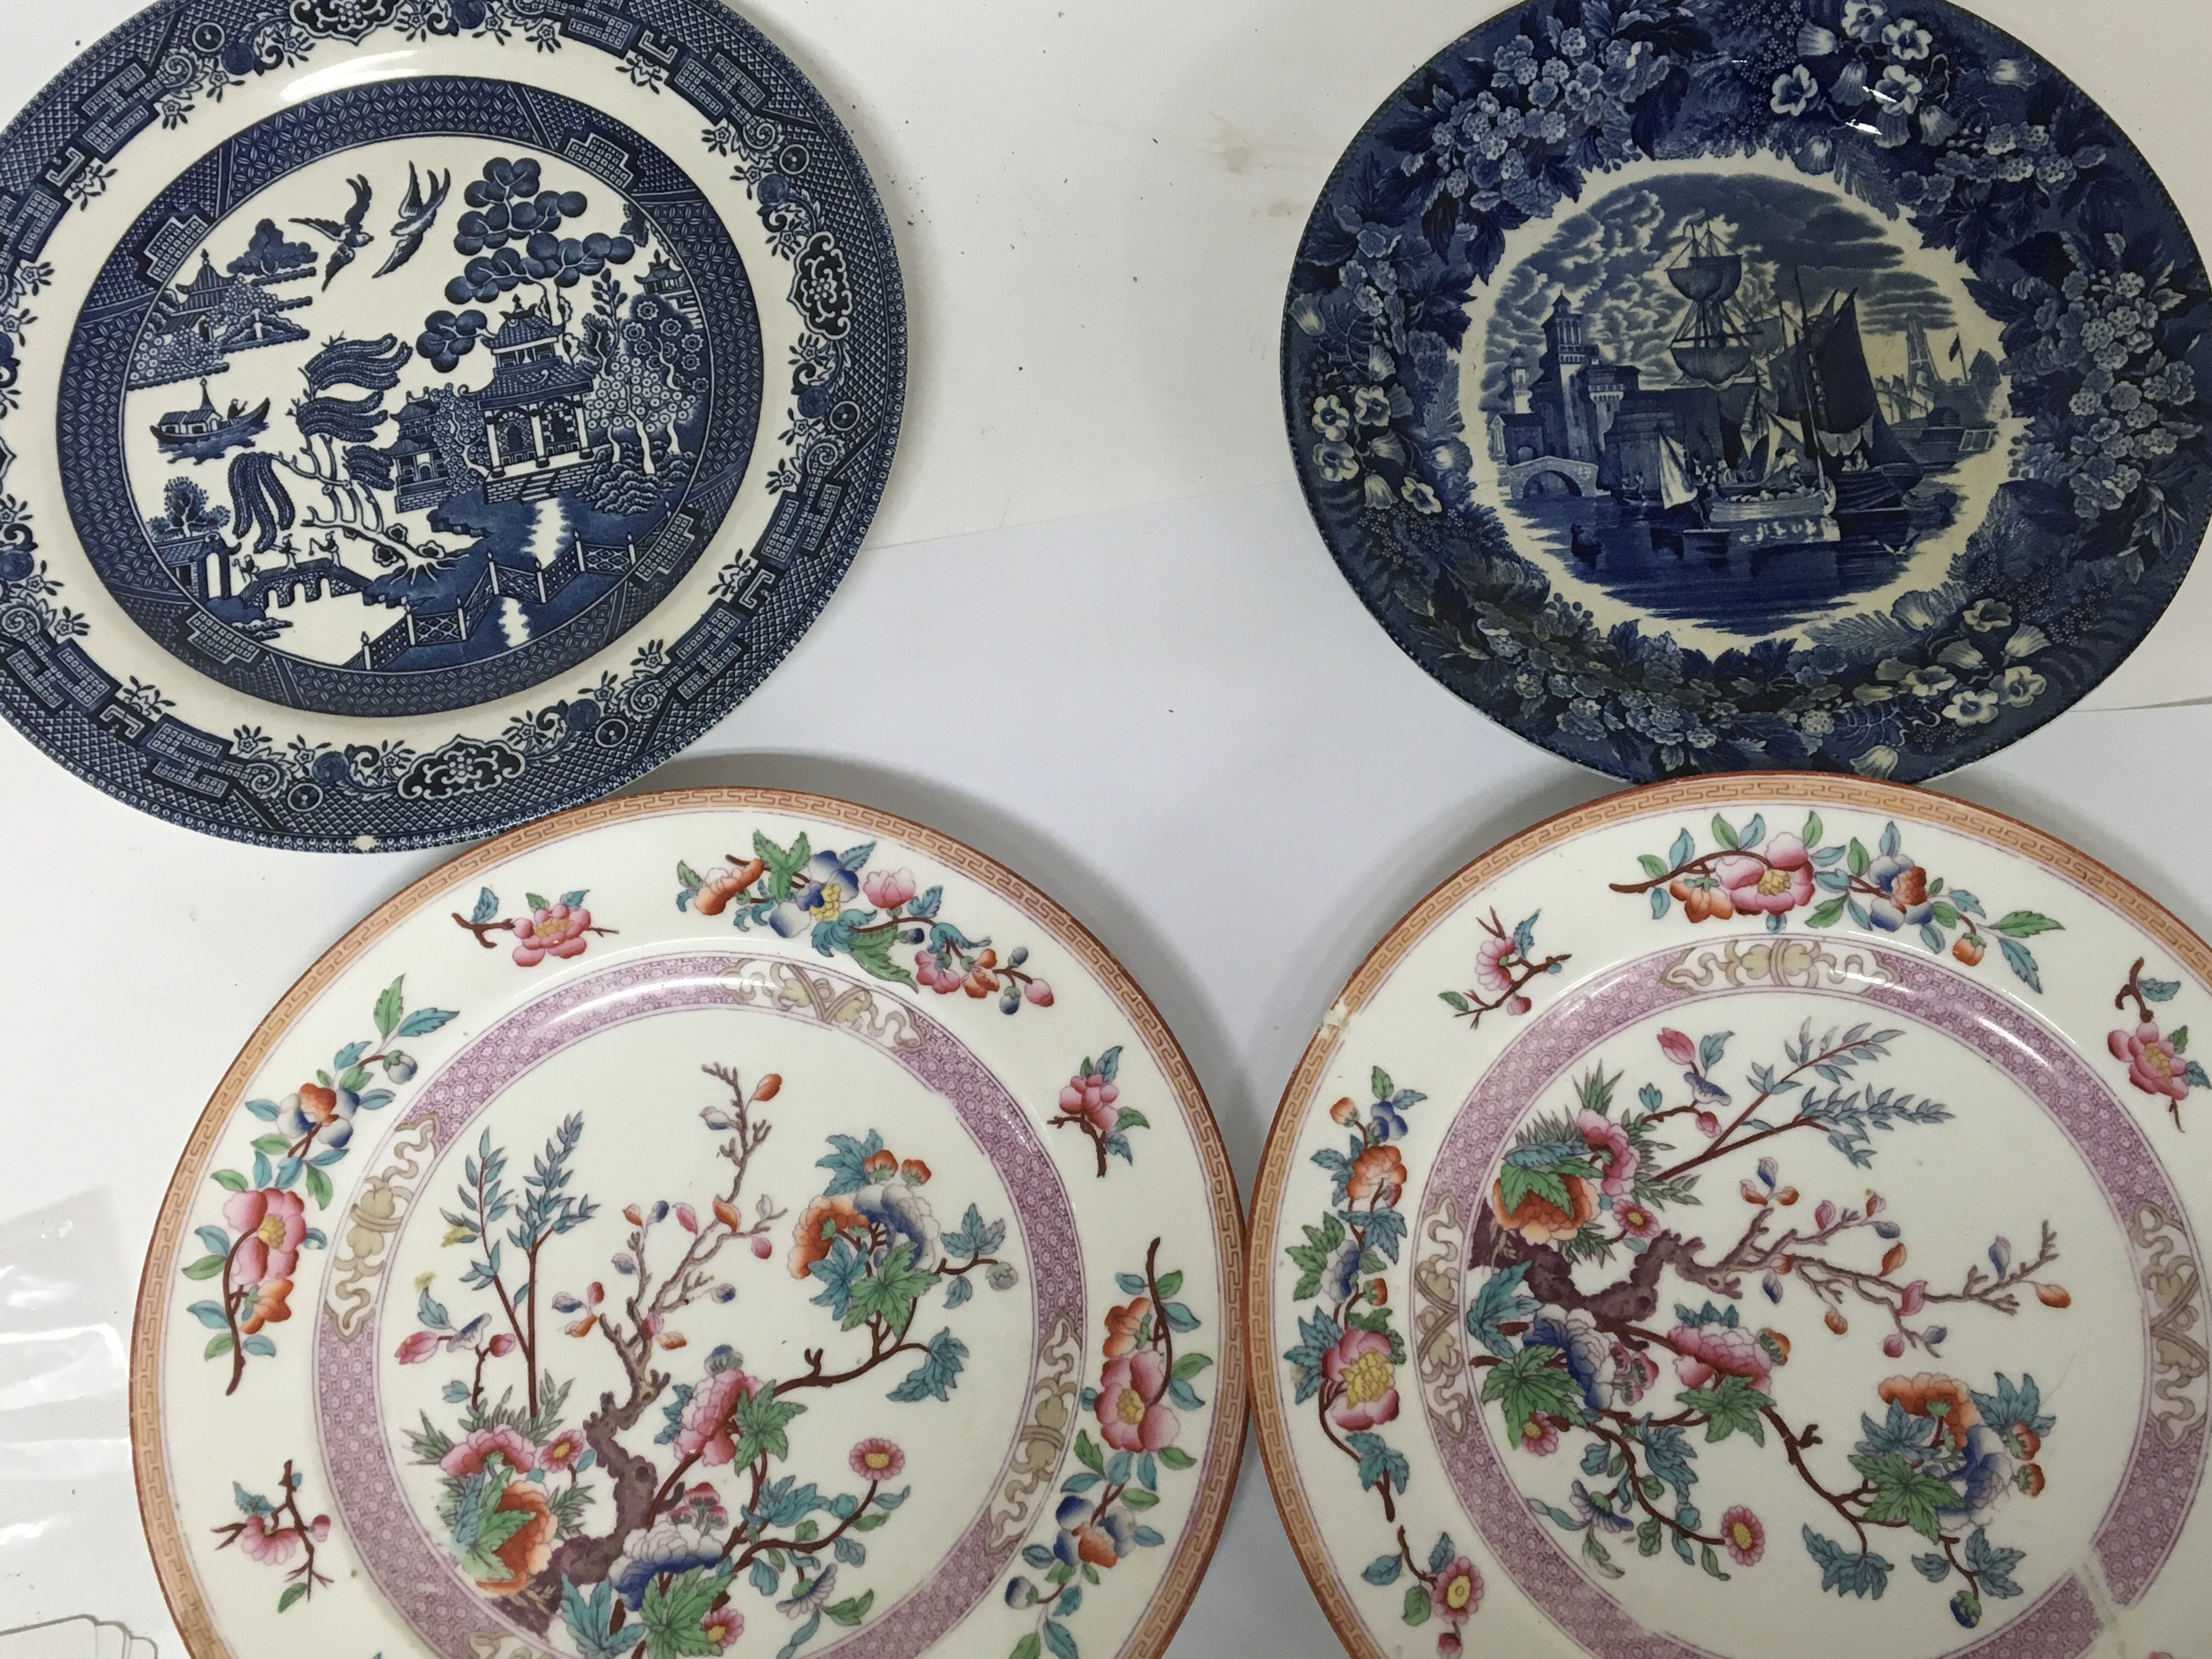 Lot 733 - An early 19th century blue and white Wedgwood plat